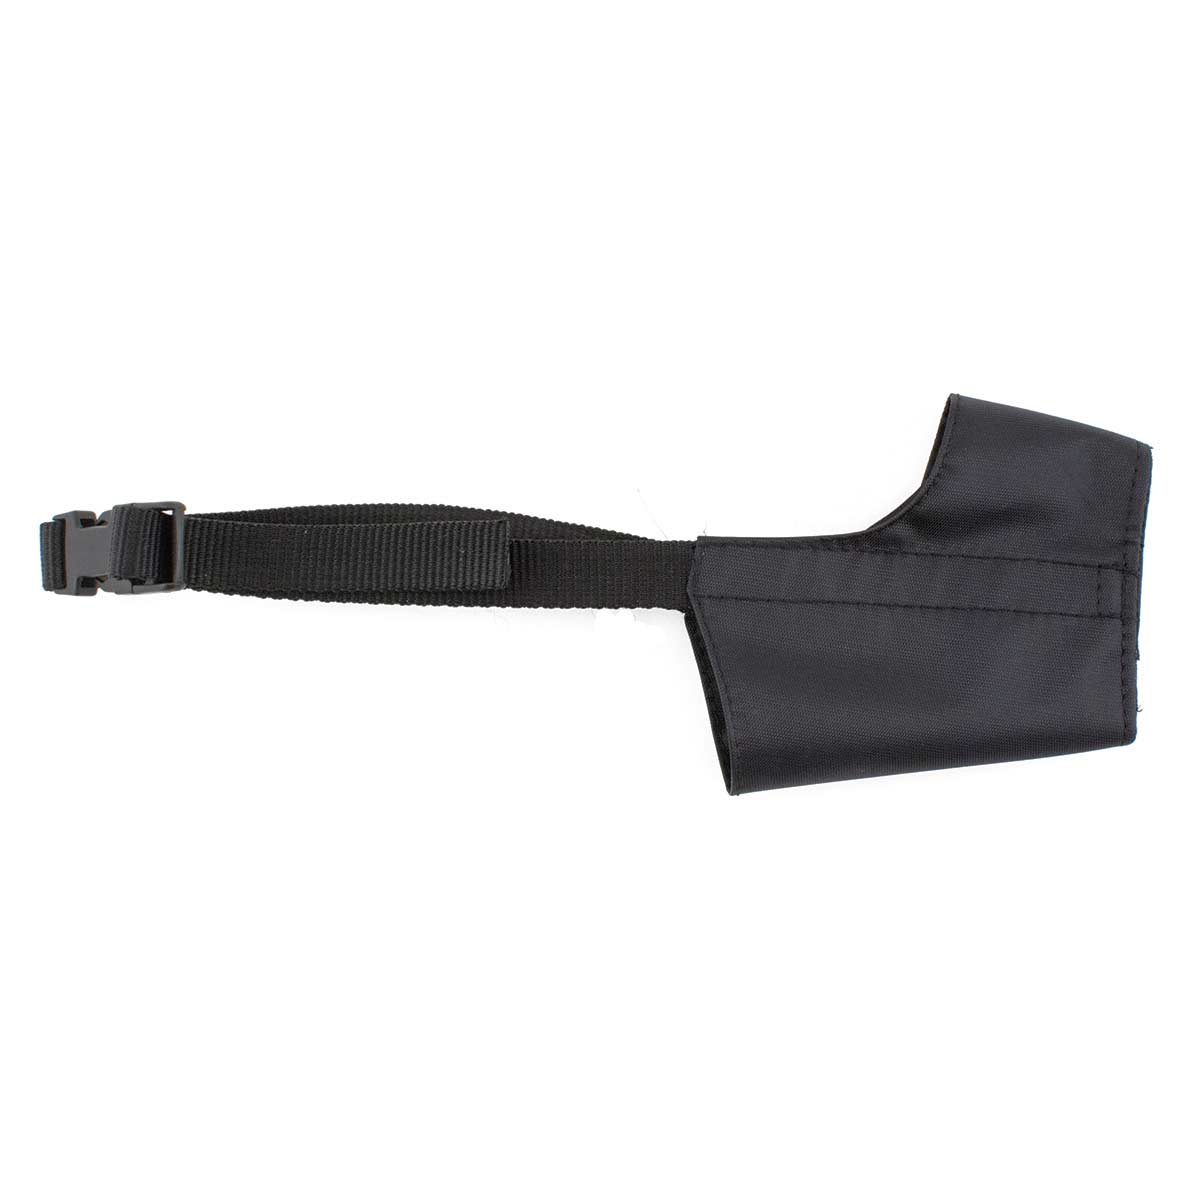 Paw Brothers Premium Nylon Muzzle Size 2X-Large Small 6.25 inches - 7.25 inches